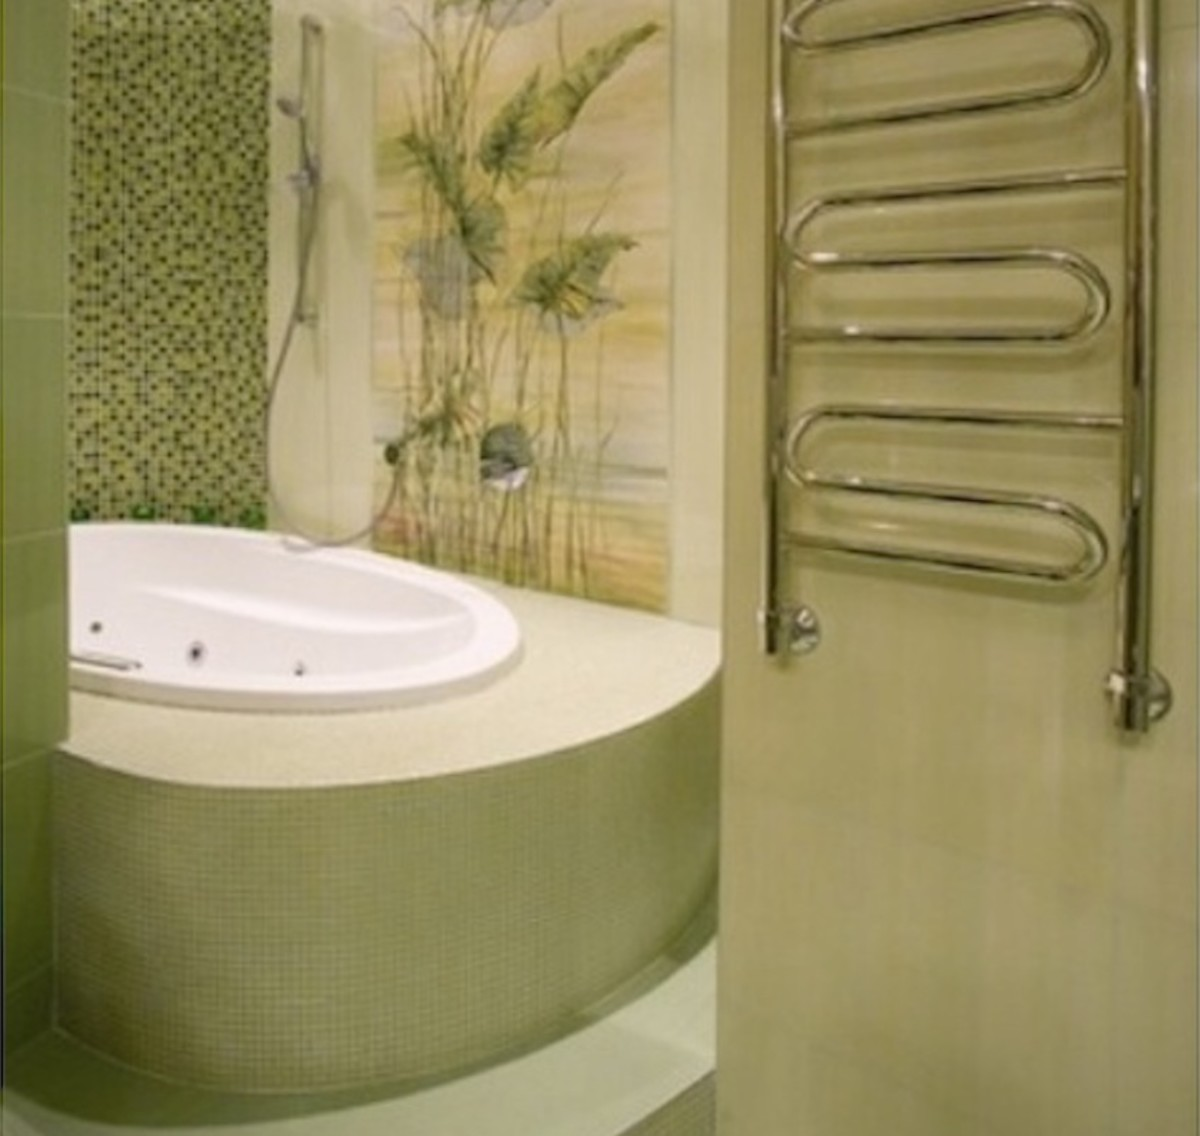 This bathroom, done in a relaxing, soothing Spa Green color, provides a welcome respite from the stresses of daily life.